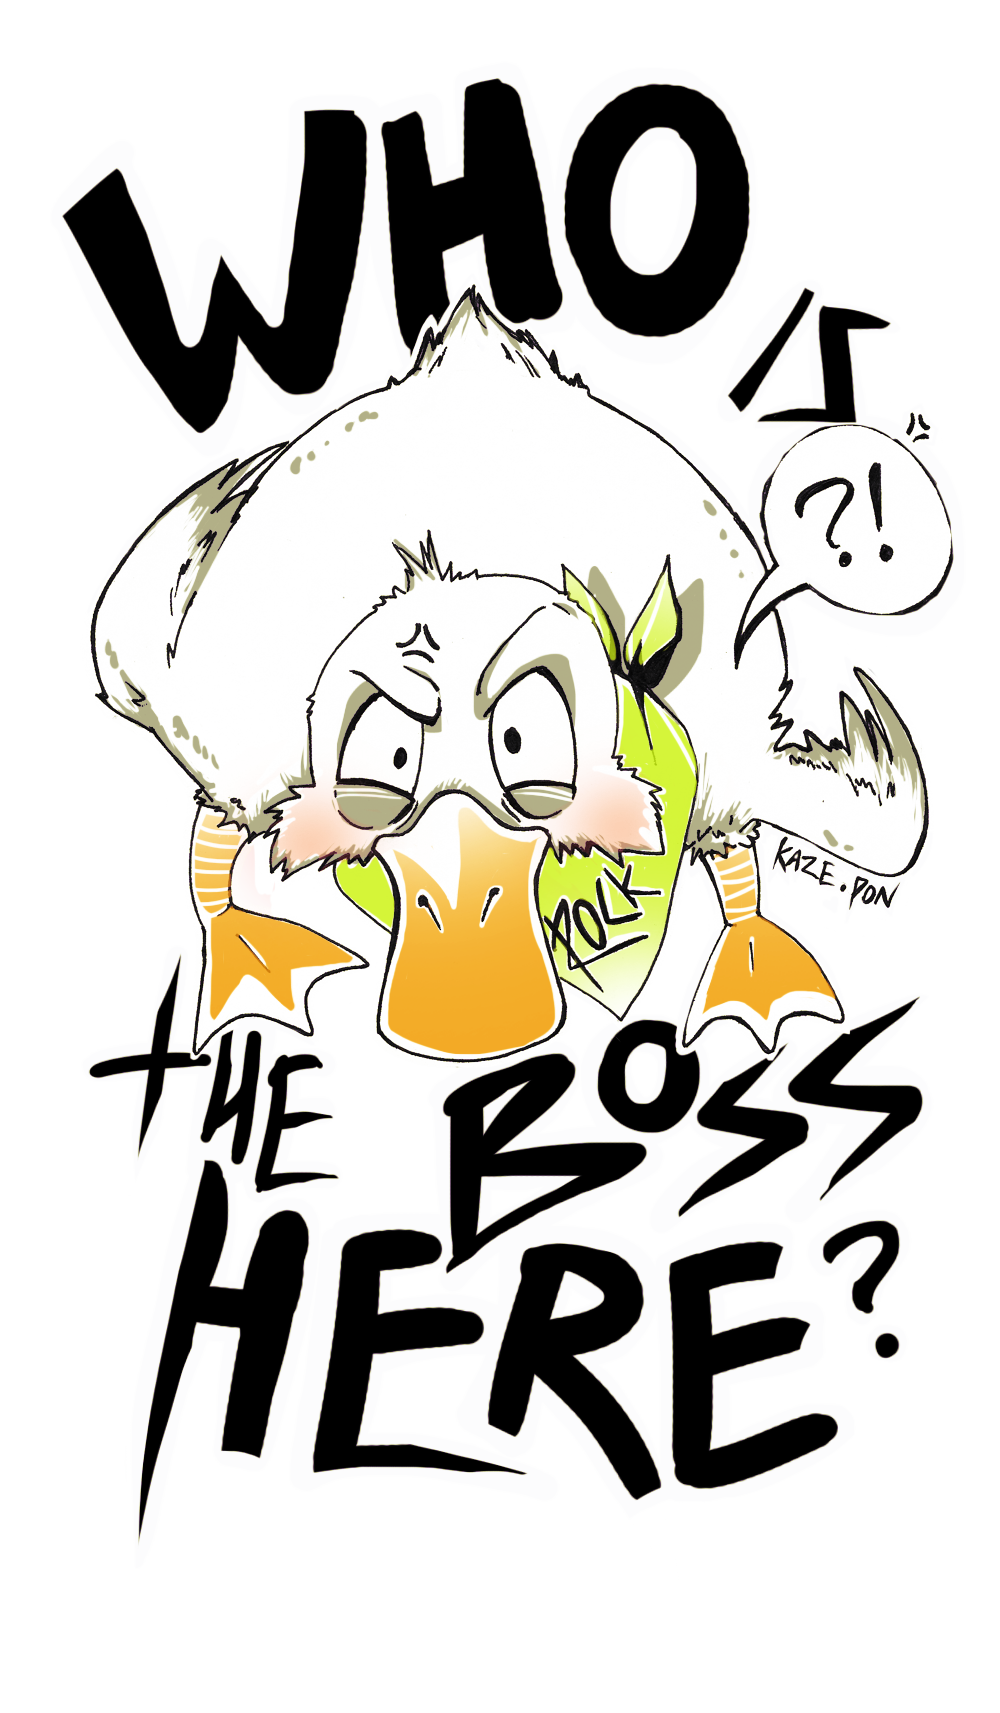 T shirt logo duckboss xd by kaze pon on deviantart for Shirts with small logos